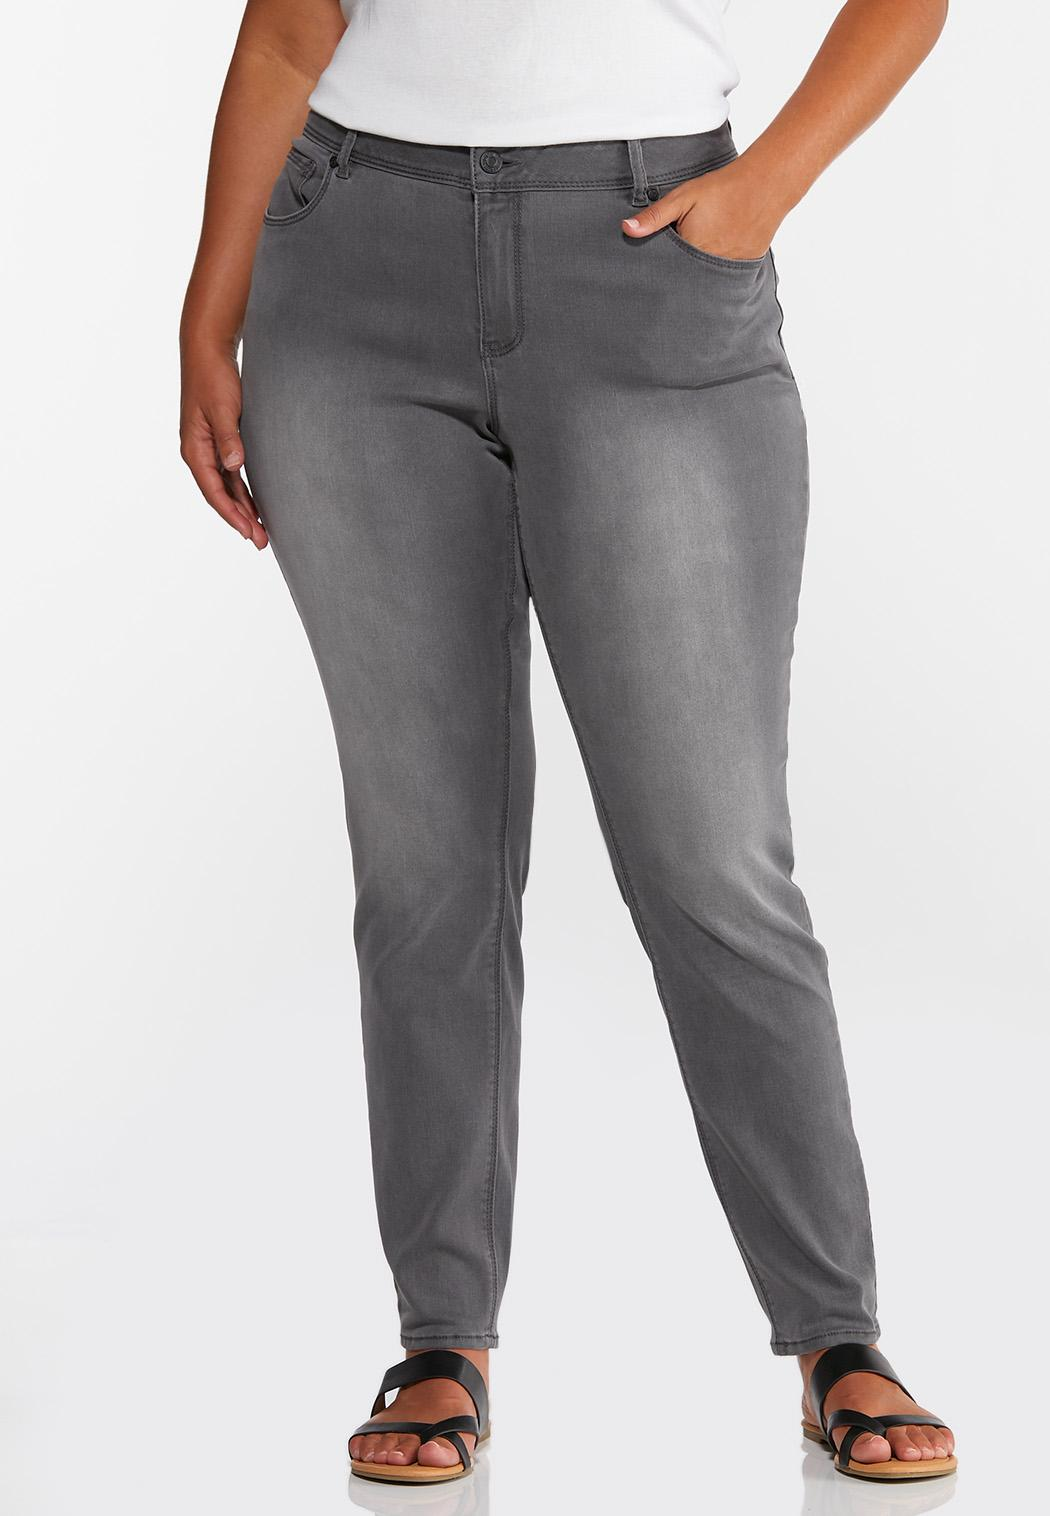 Plus Size Gray Jeggings